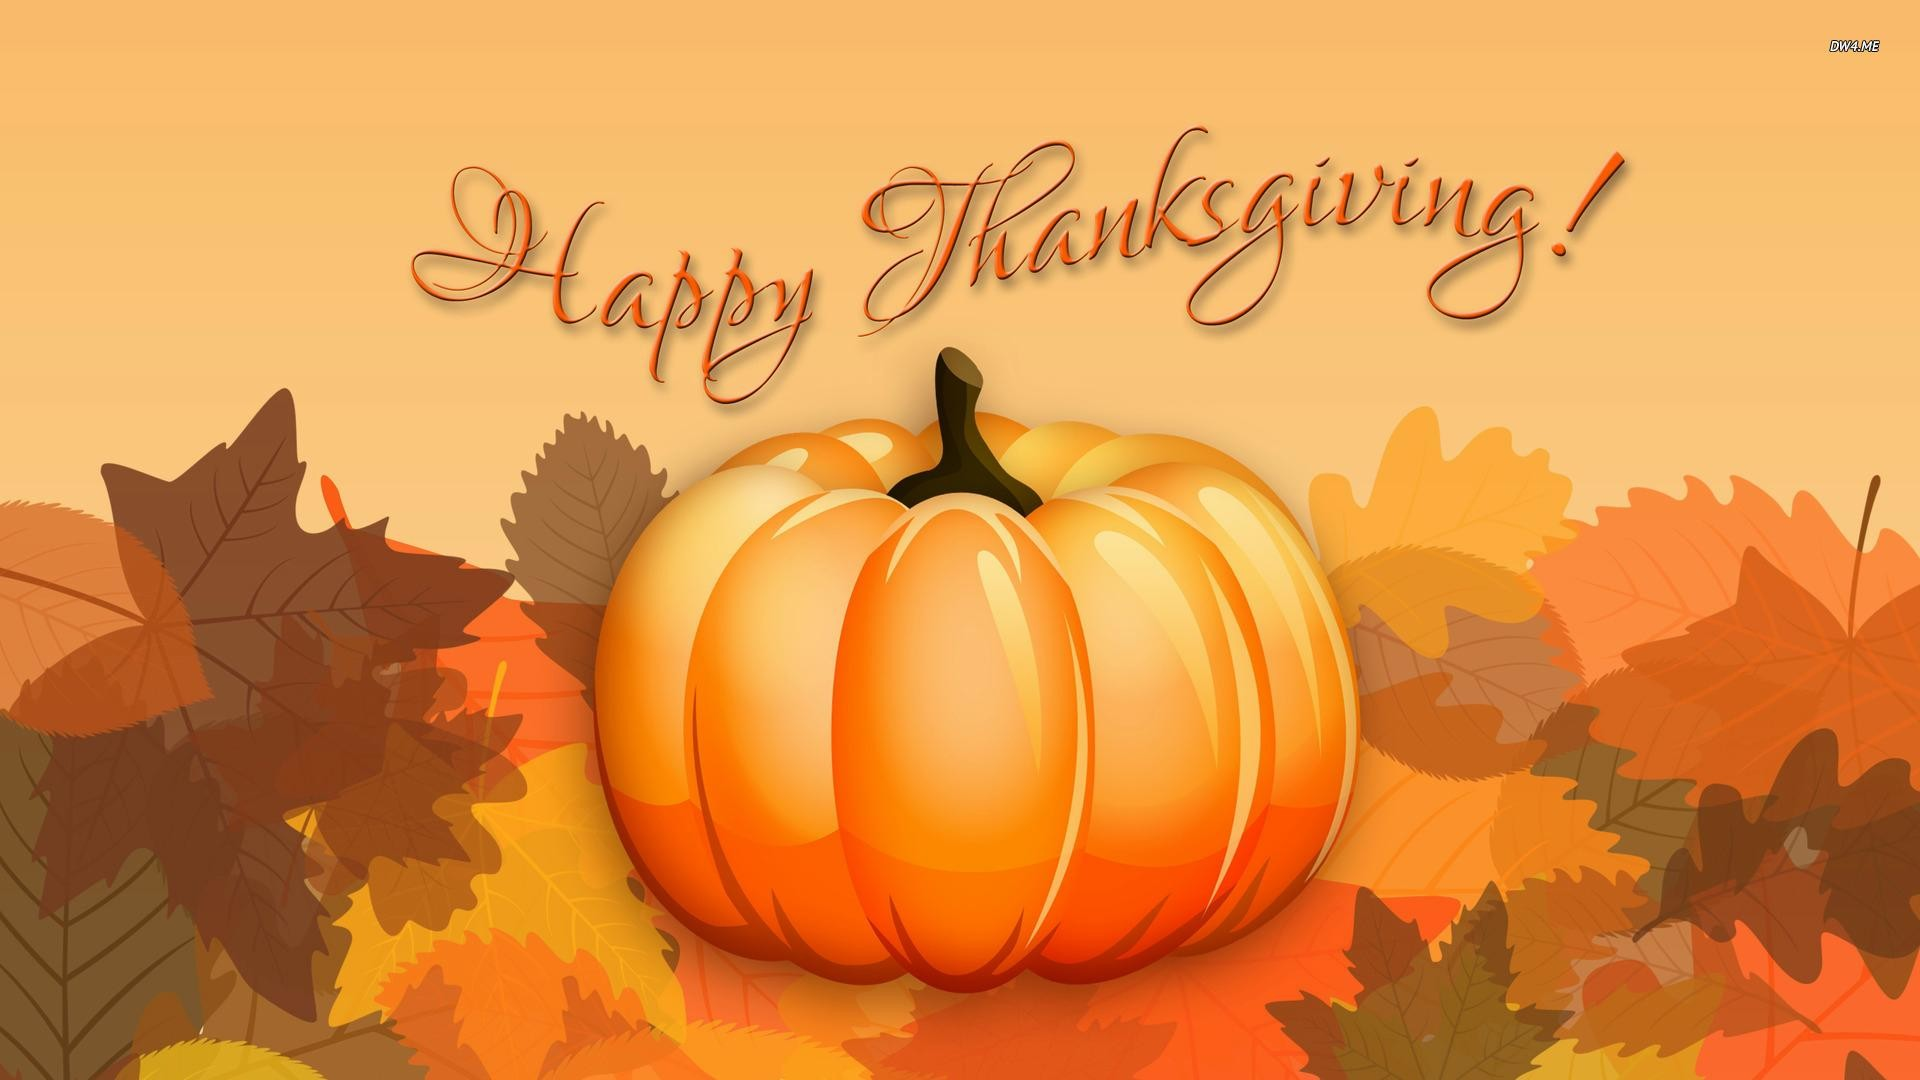 Collection of Free Thanksgiving Wallpaper For Desktop on HDWallpapers  1920×1080